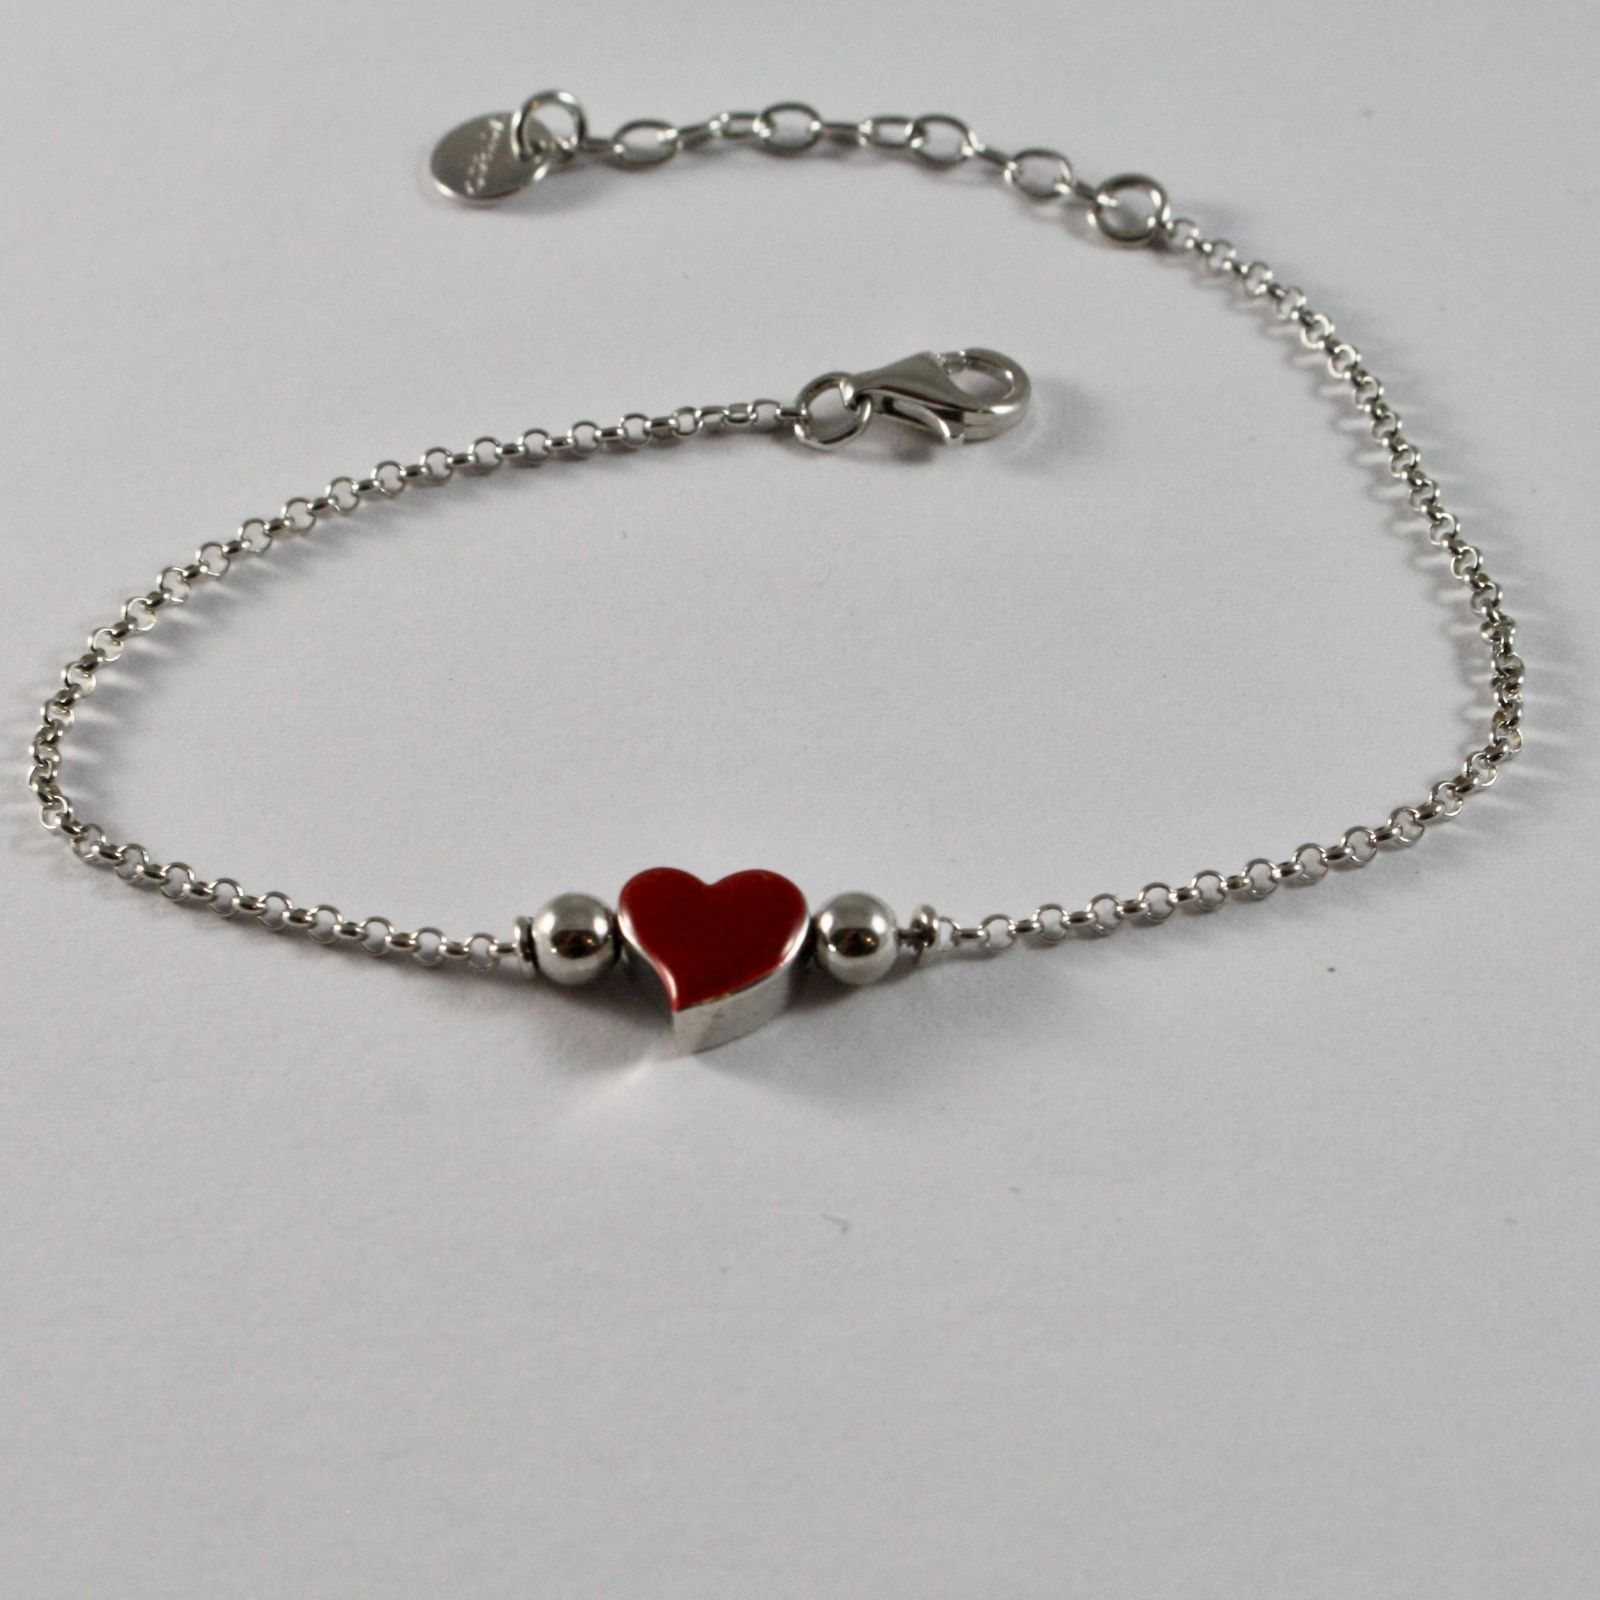 SILVER 925 BRACELET JACK&CO HEART RED STYLIZED ENAMELLED LOVE JCB0907